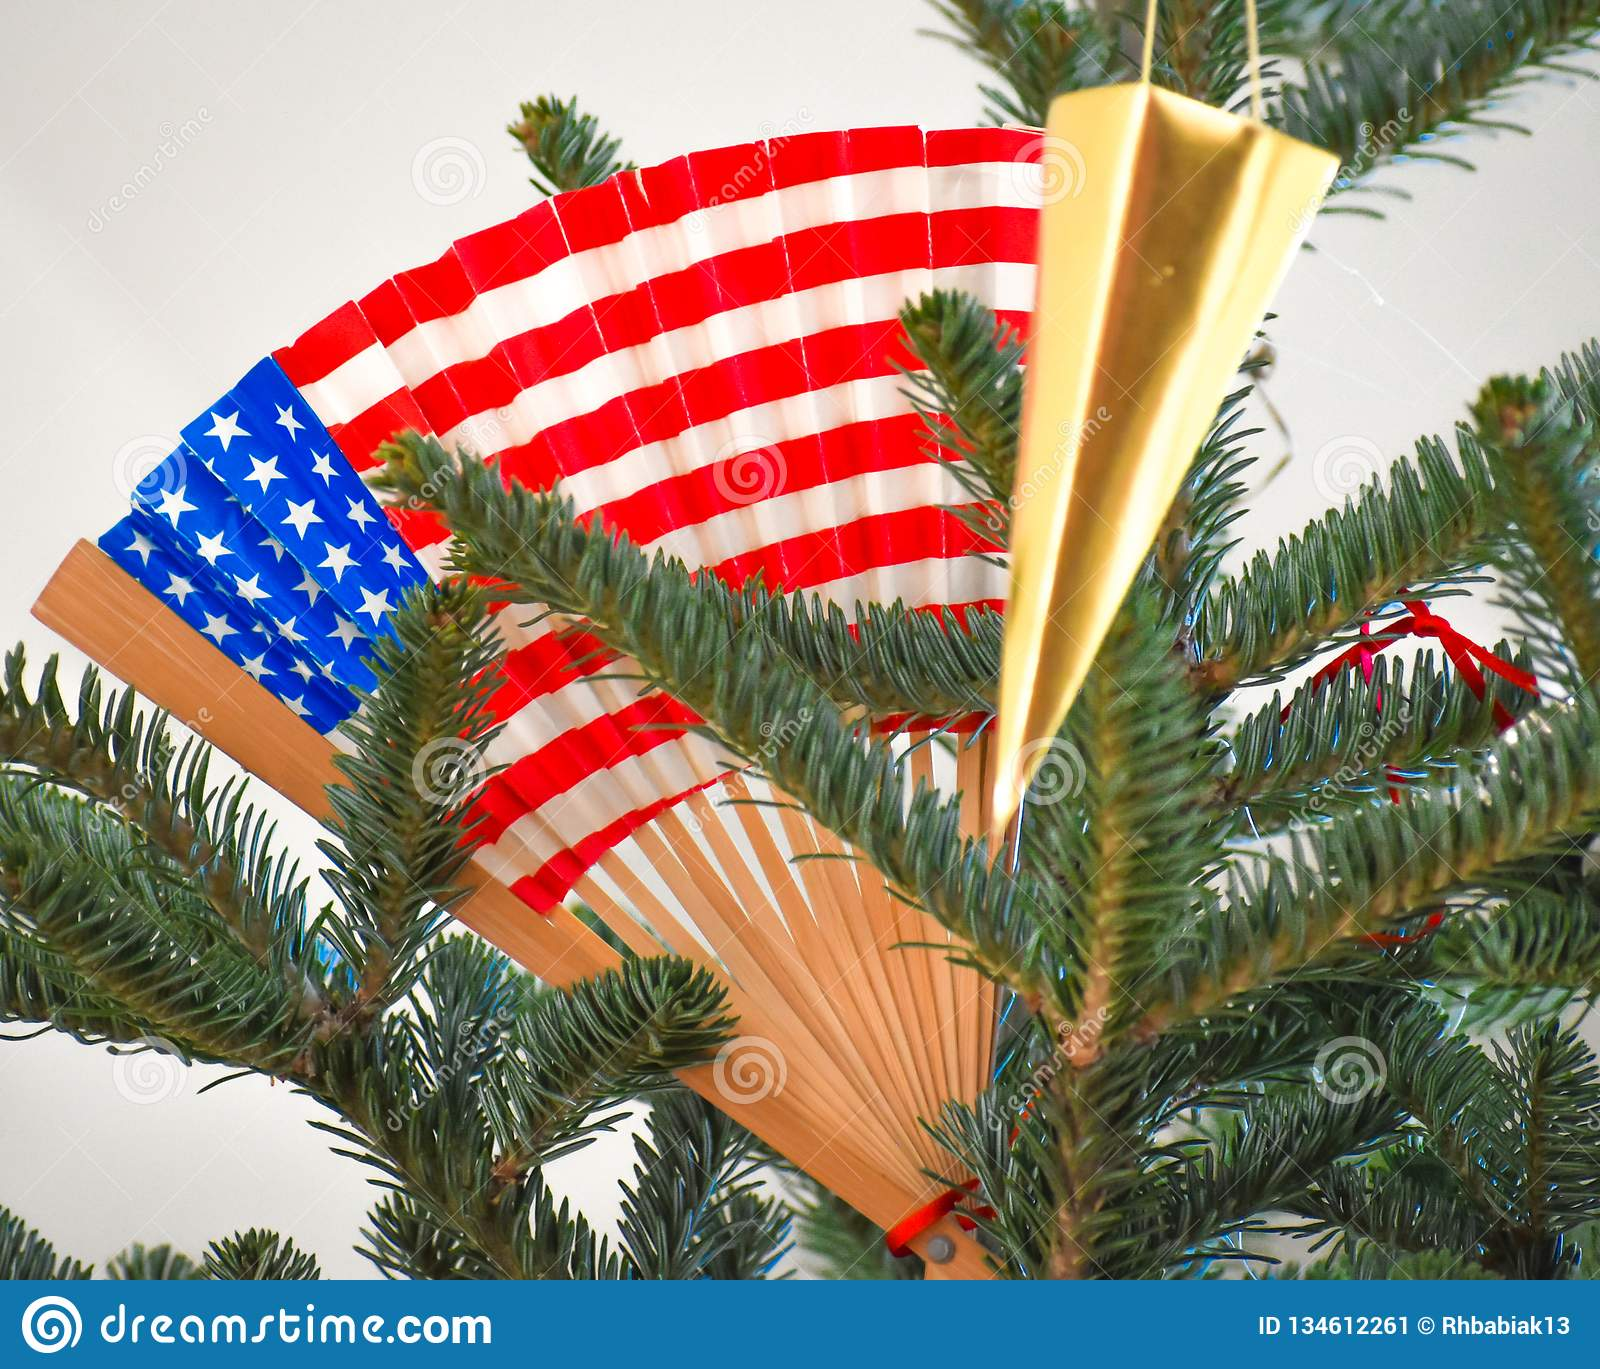 An Evergreen Christmas.American Flag Patriotic Flag In Christmas Tree Stock Image